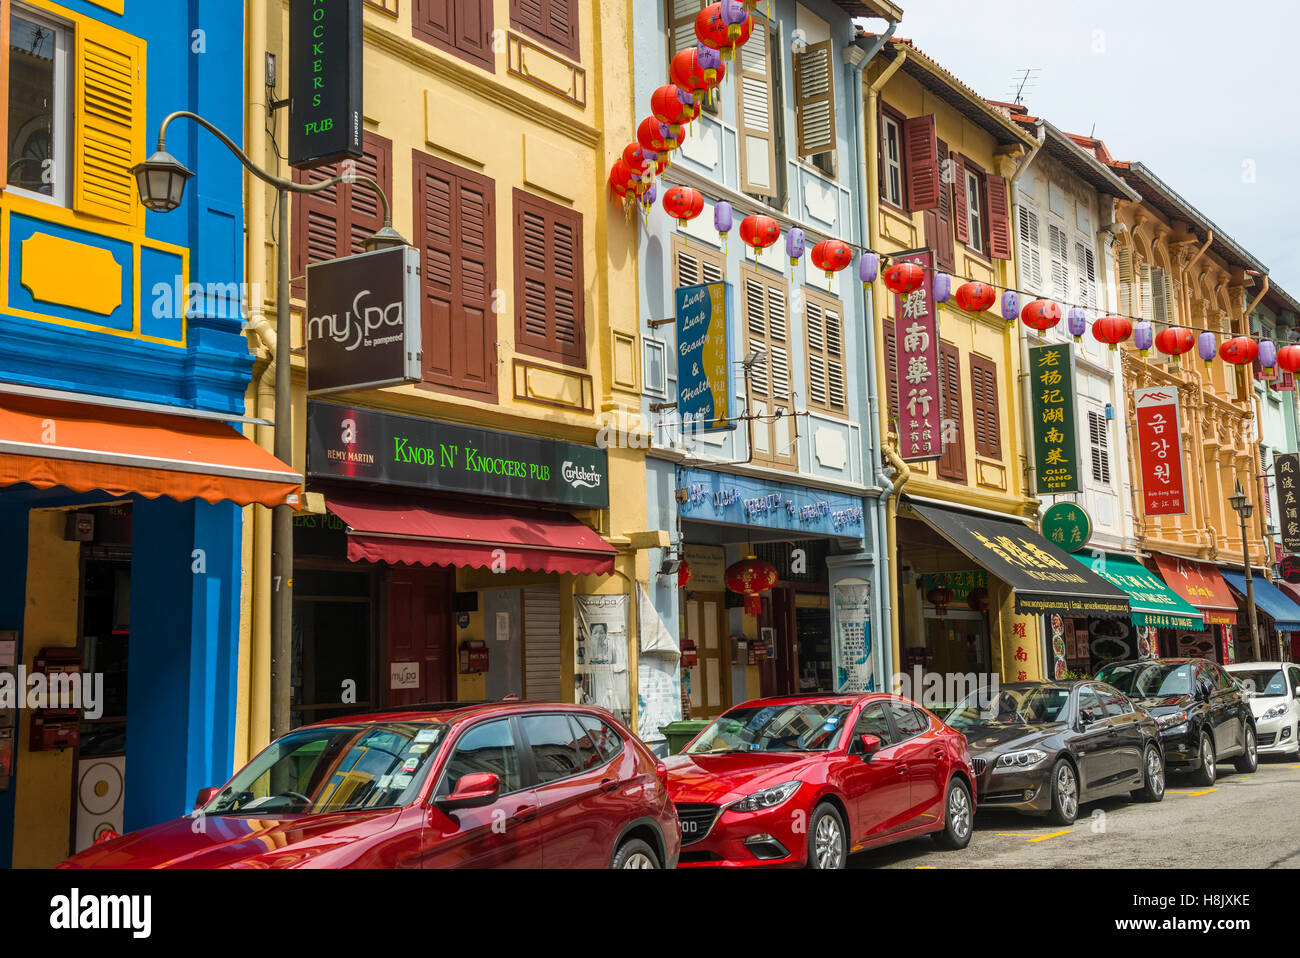 Shophouses and small stalls in Chinatown, Singapore - Stock Image